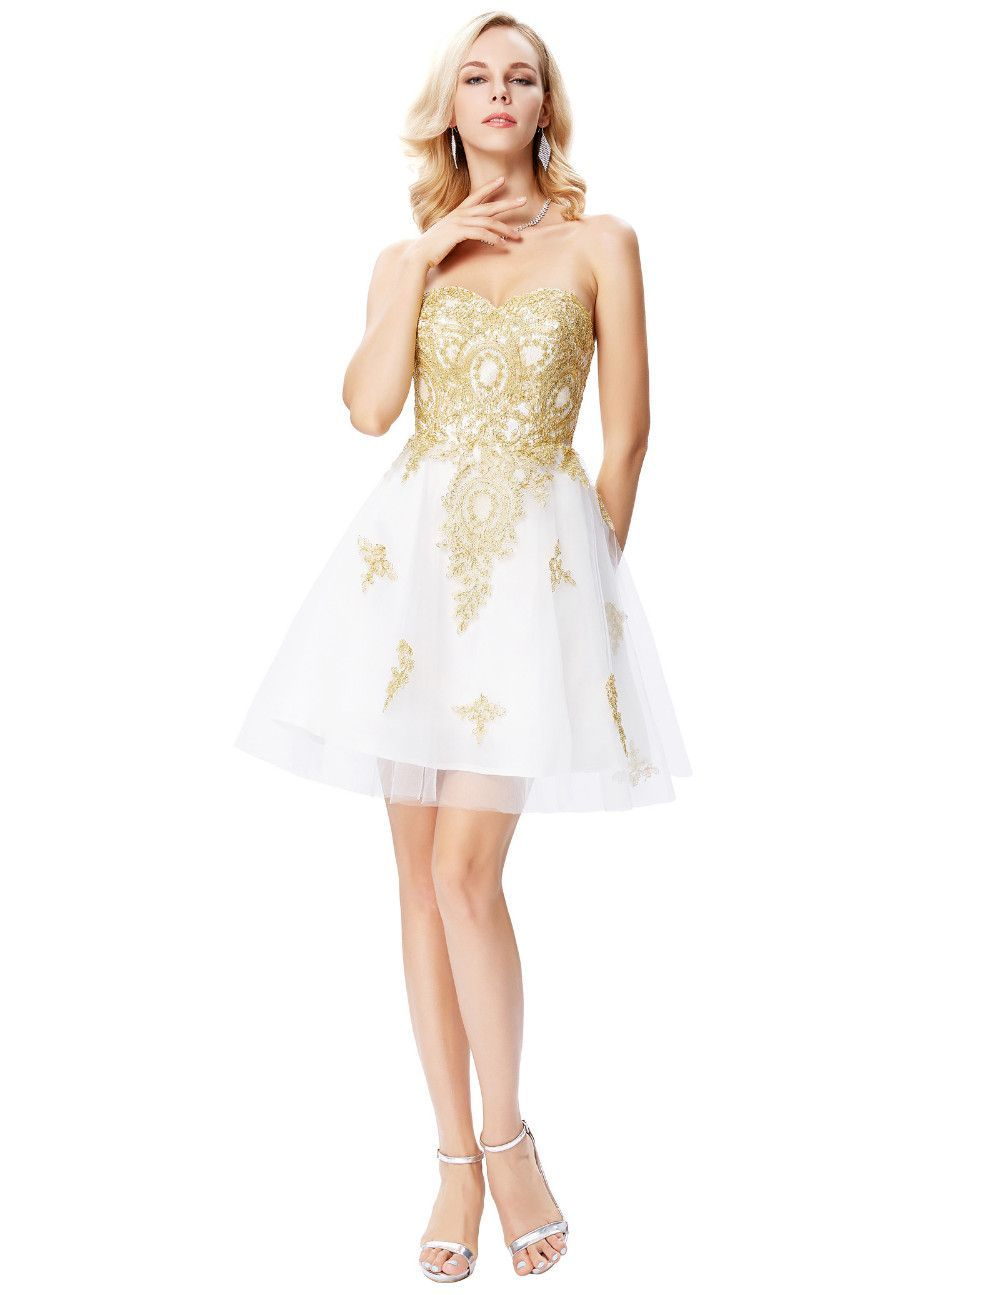 1c58116eb23 Golden Appliques White Sweetheart Knee Length Short Prom Dress -  Uniqistic.com